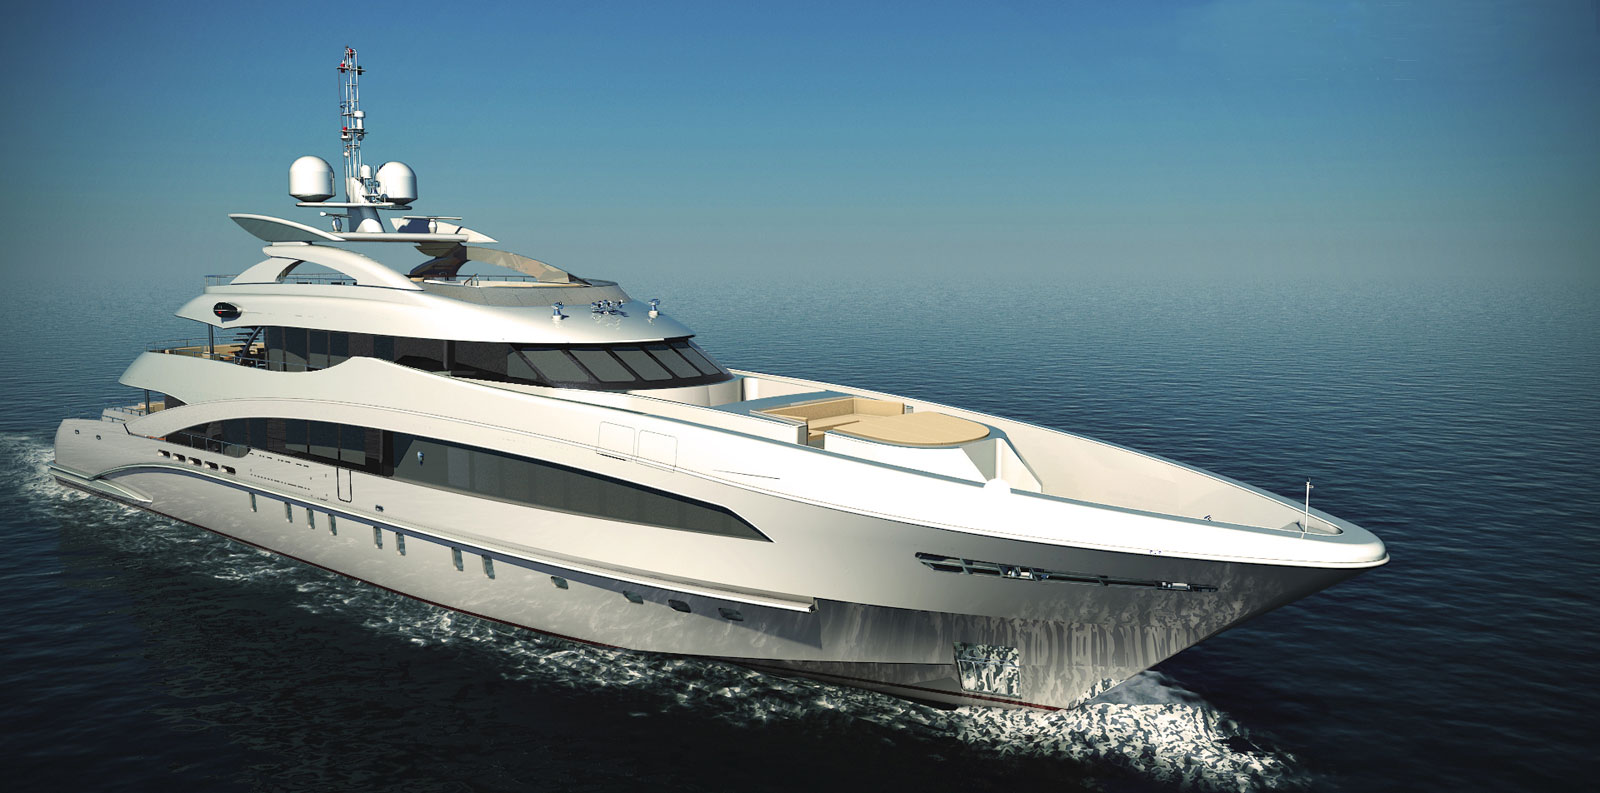 Ice angel hessen yachts 39 new 50 meter luxury yacht for Angel boats and motors